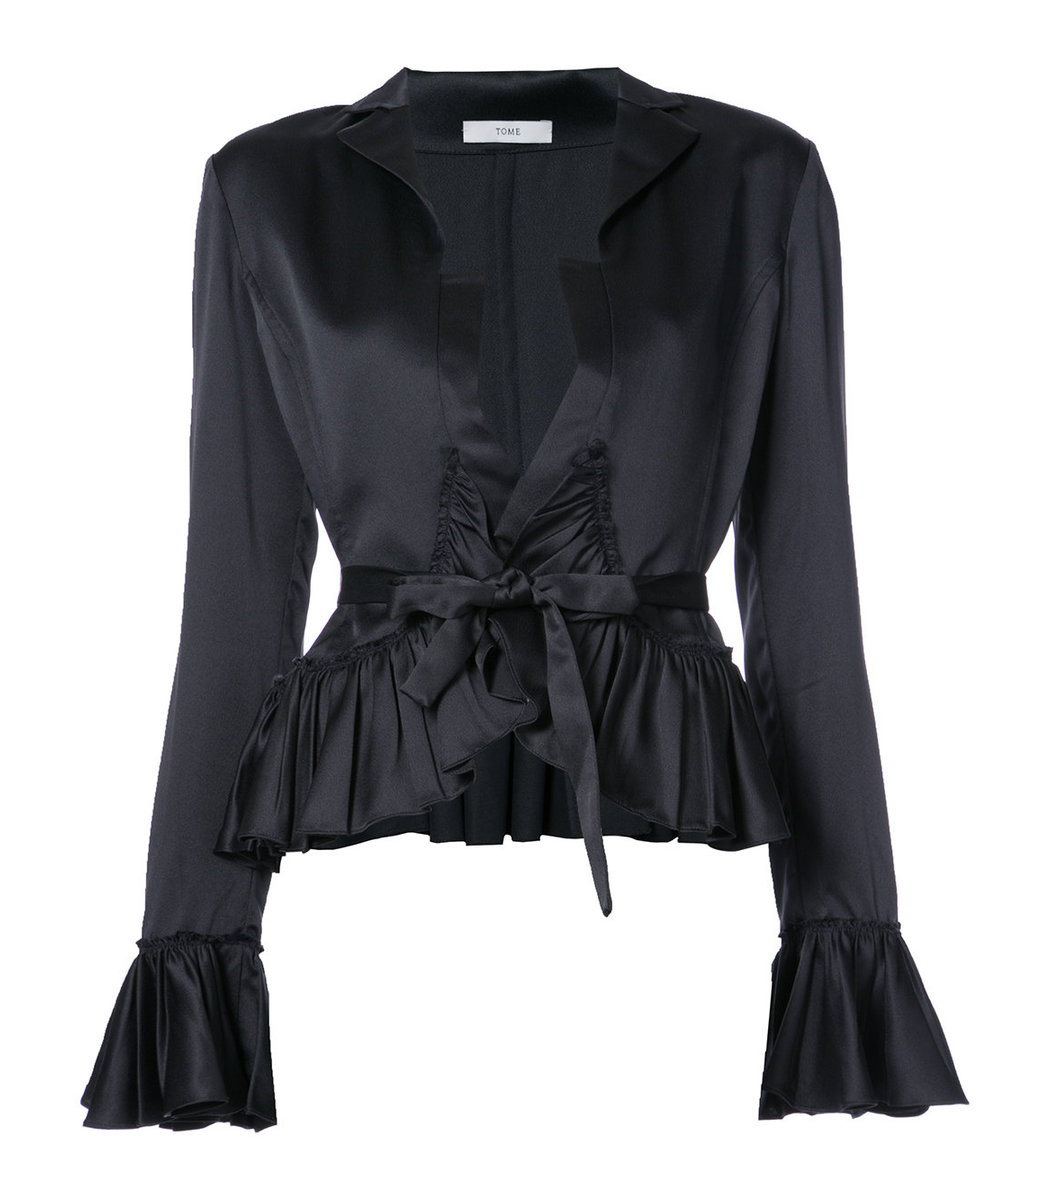 Tome Black Tie Blouse With Frills